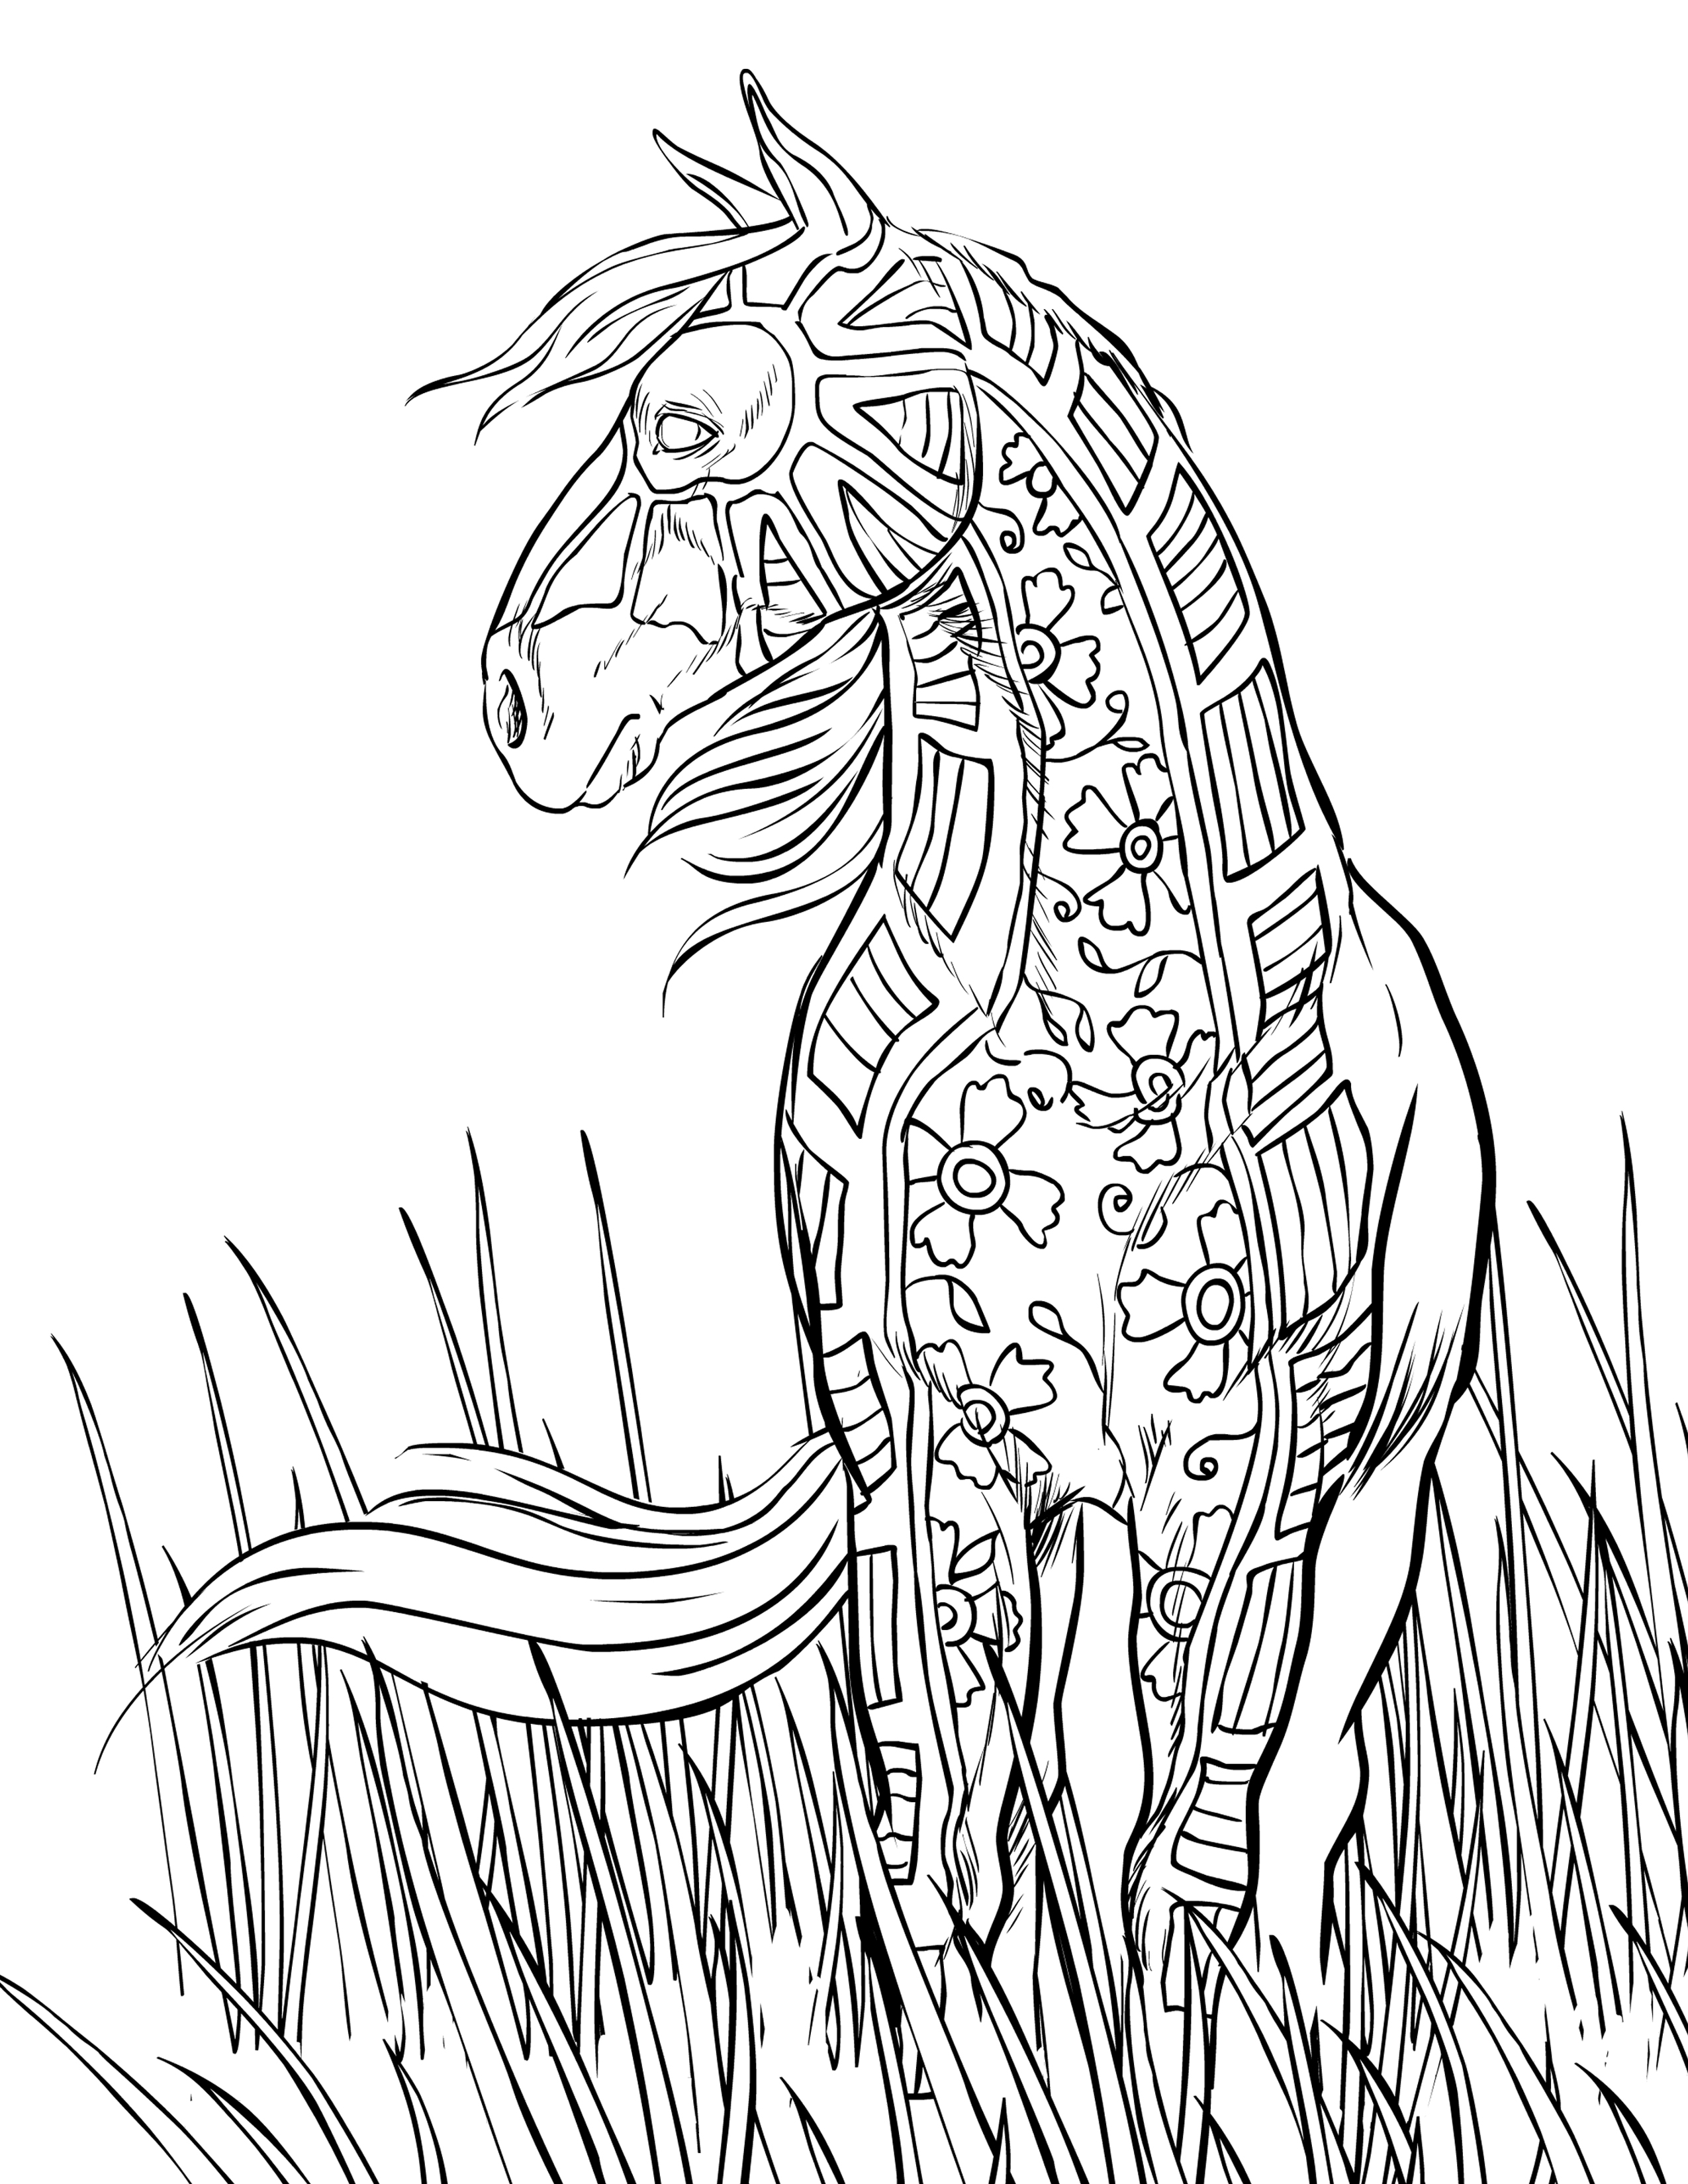 horse printables coloring pages fun horse coloring pages for your kids printable pages horse coloring printables 1 1